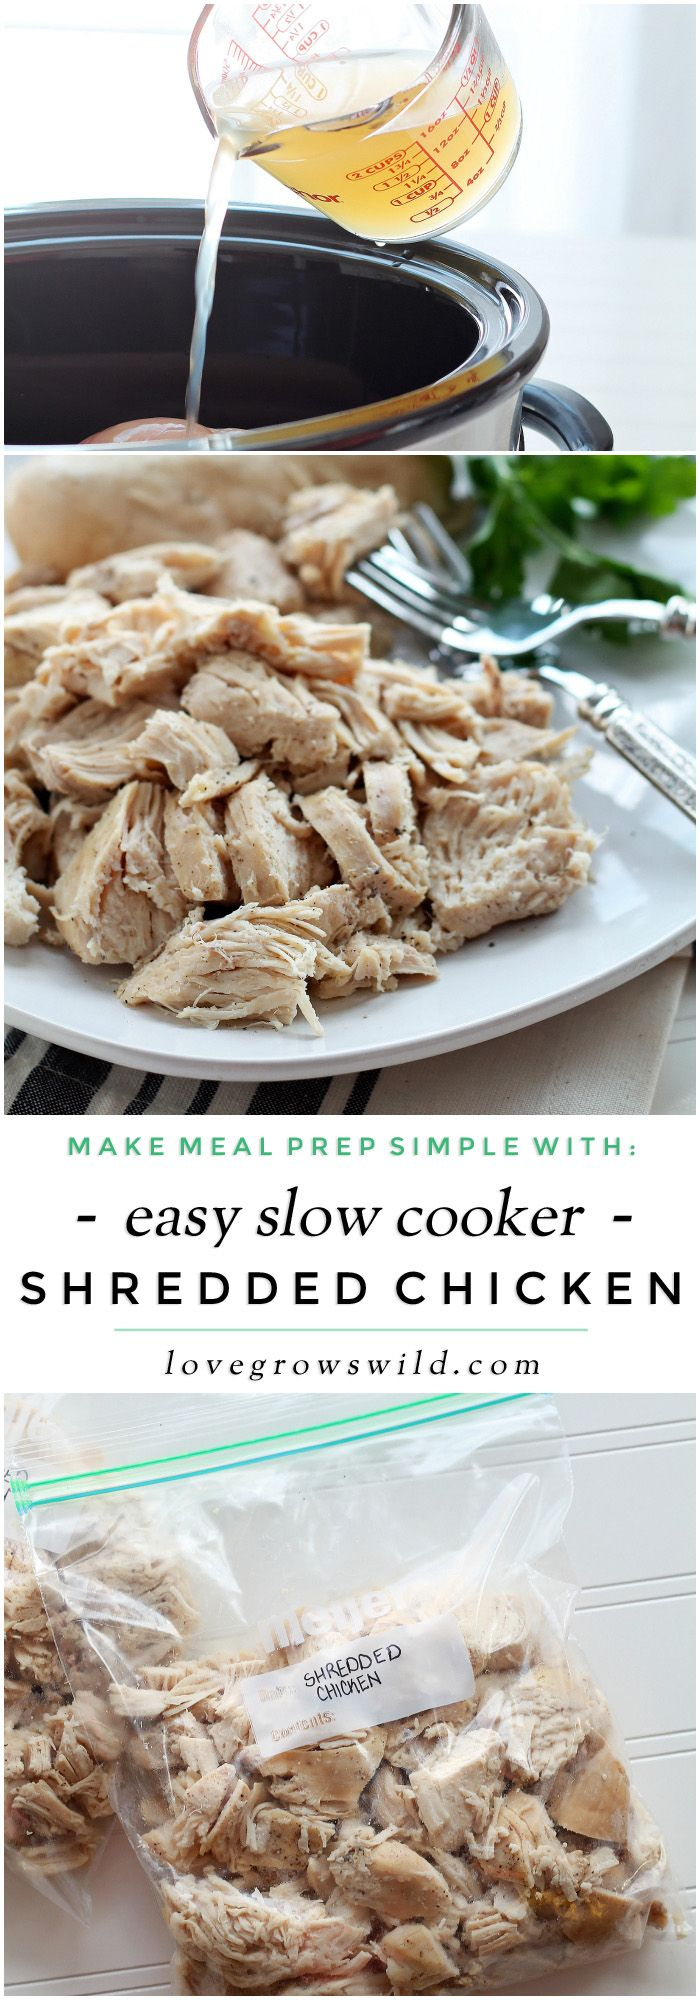 how to make shredded chicken on stove